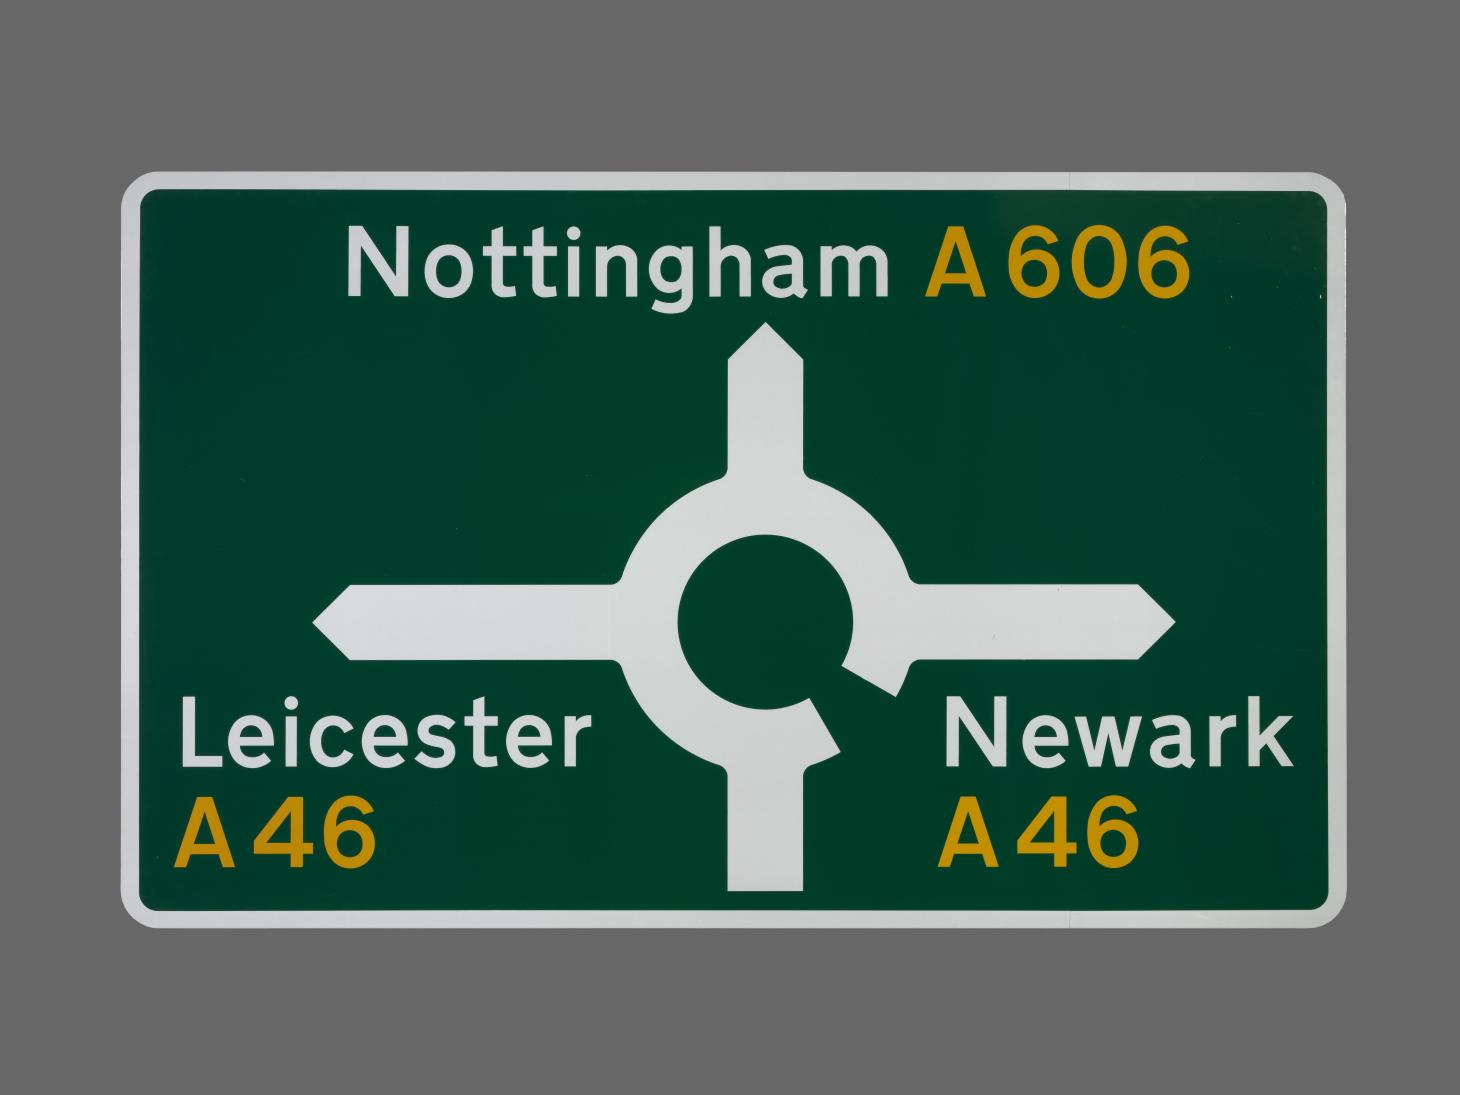 A road sign designed by Margaret Calvert and Jock Kinneir. The green background of the sign features a roundabout symbol with words, Nottingham A606, Leicester A46, Newark A46, written in white and yellow type